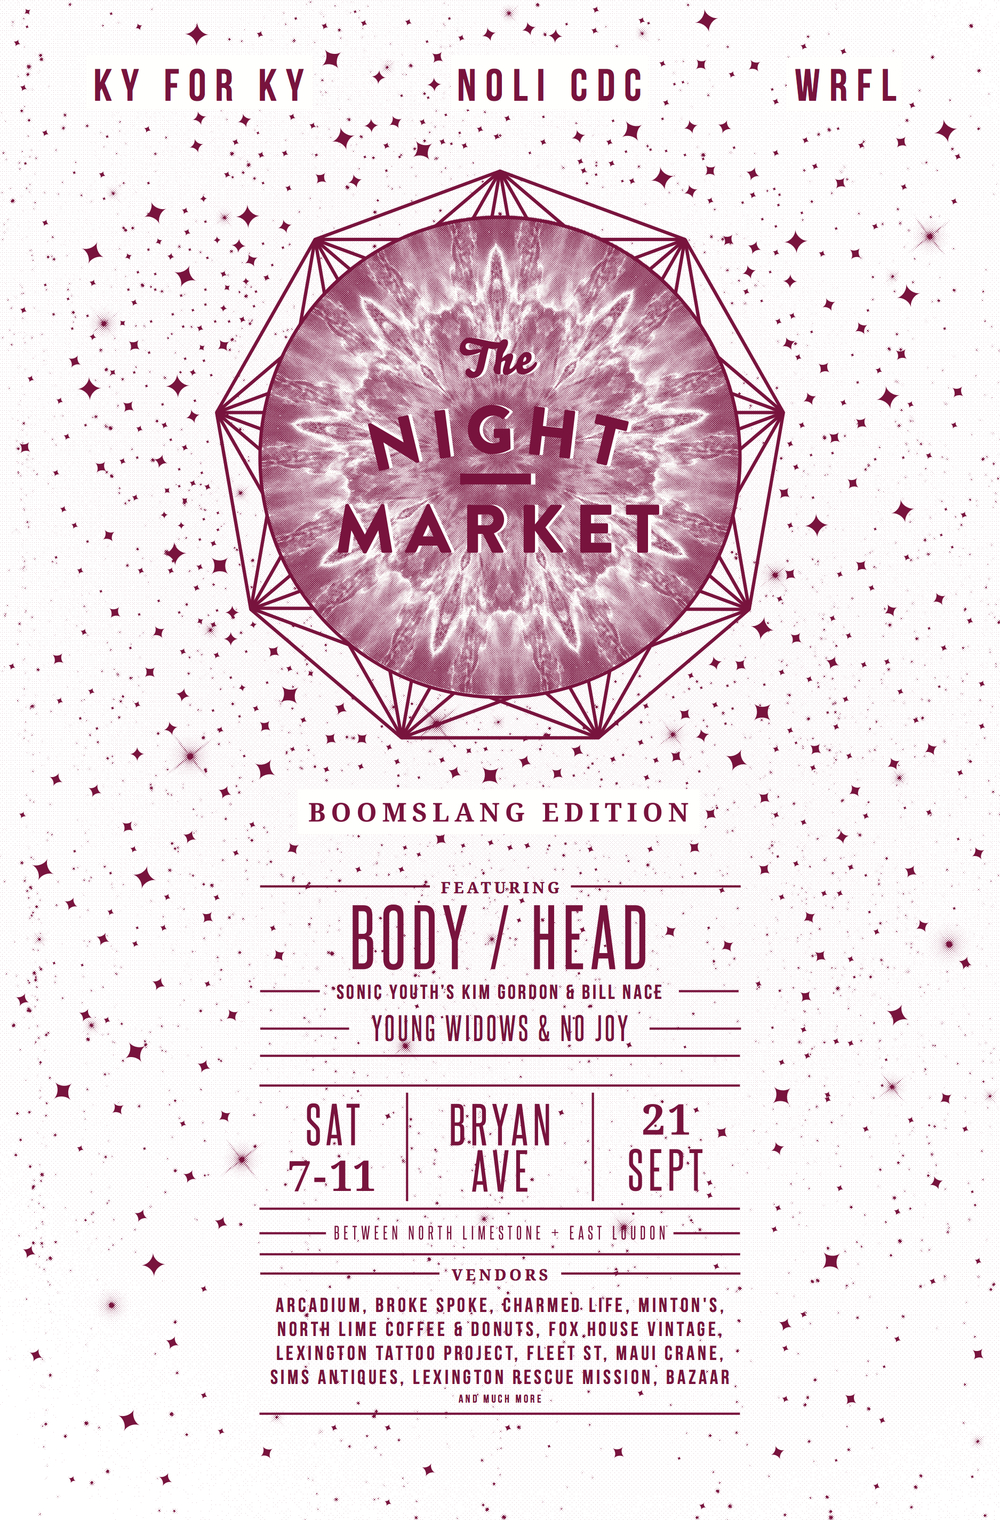 NightMarket_Poster_Sept.jpg